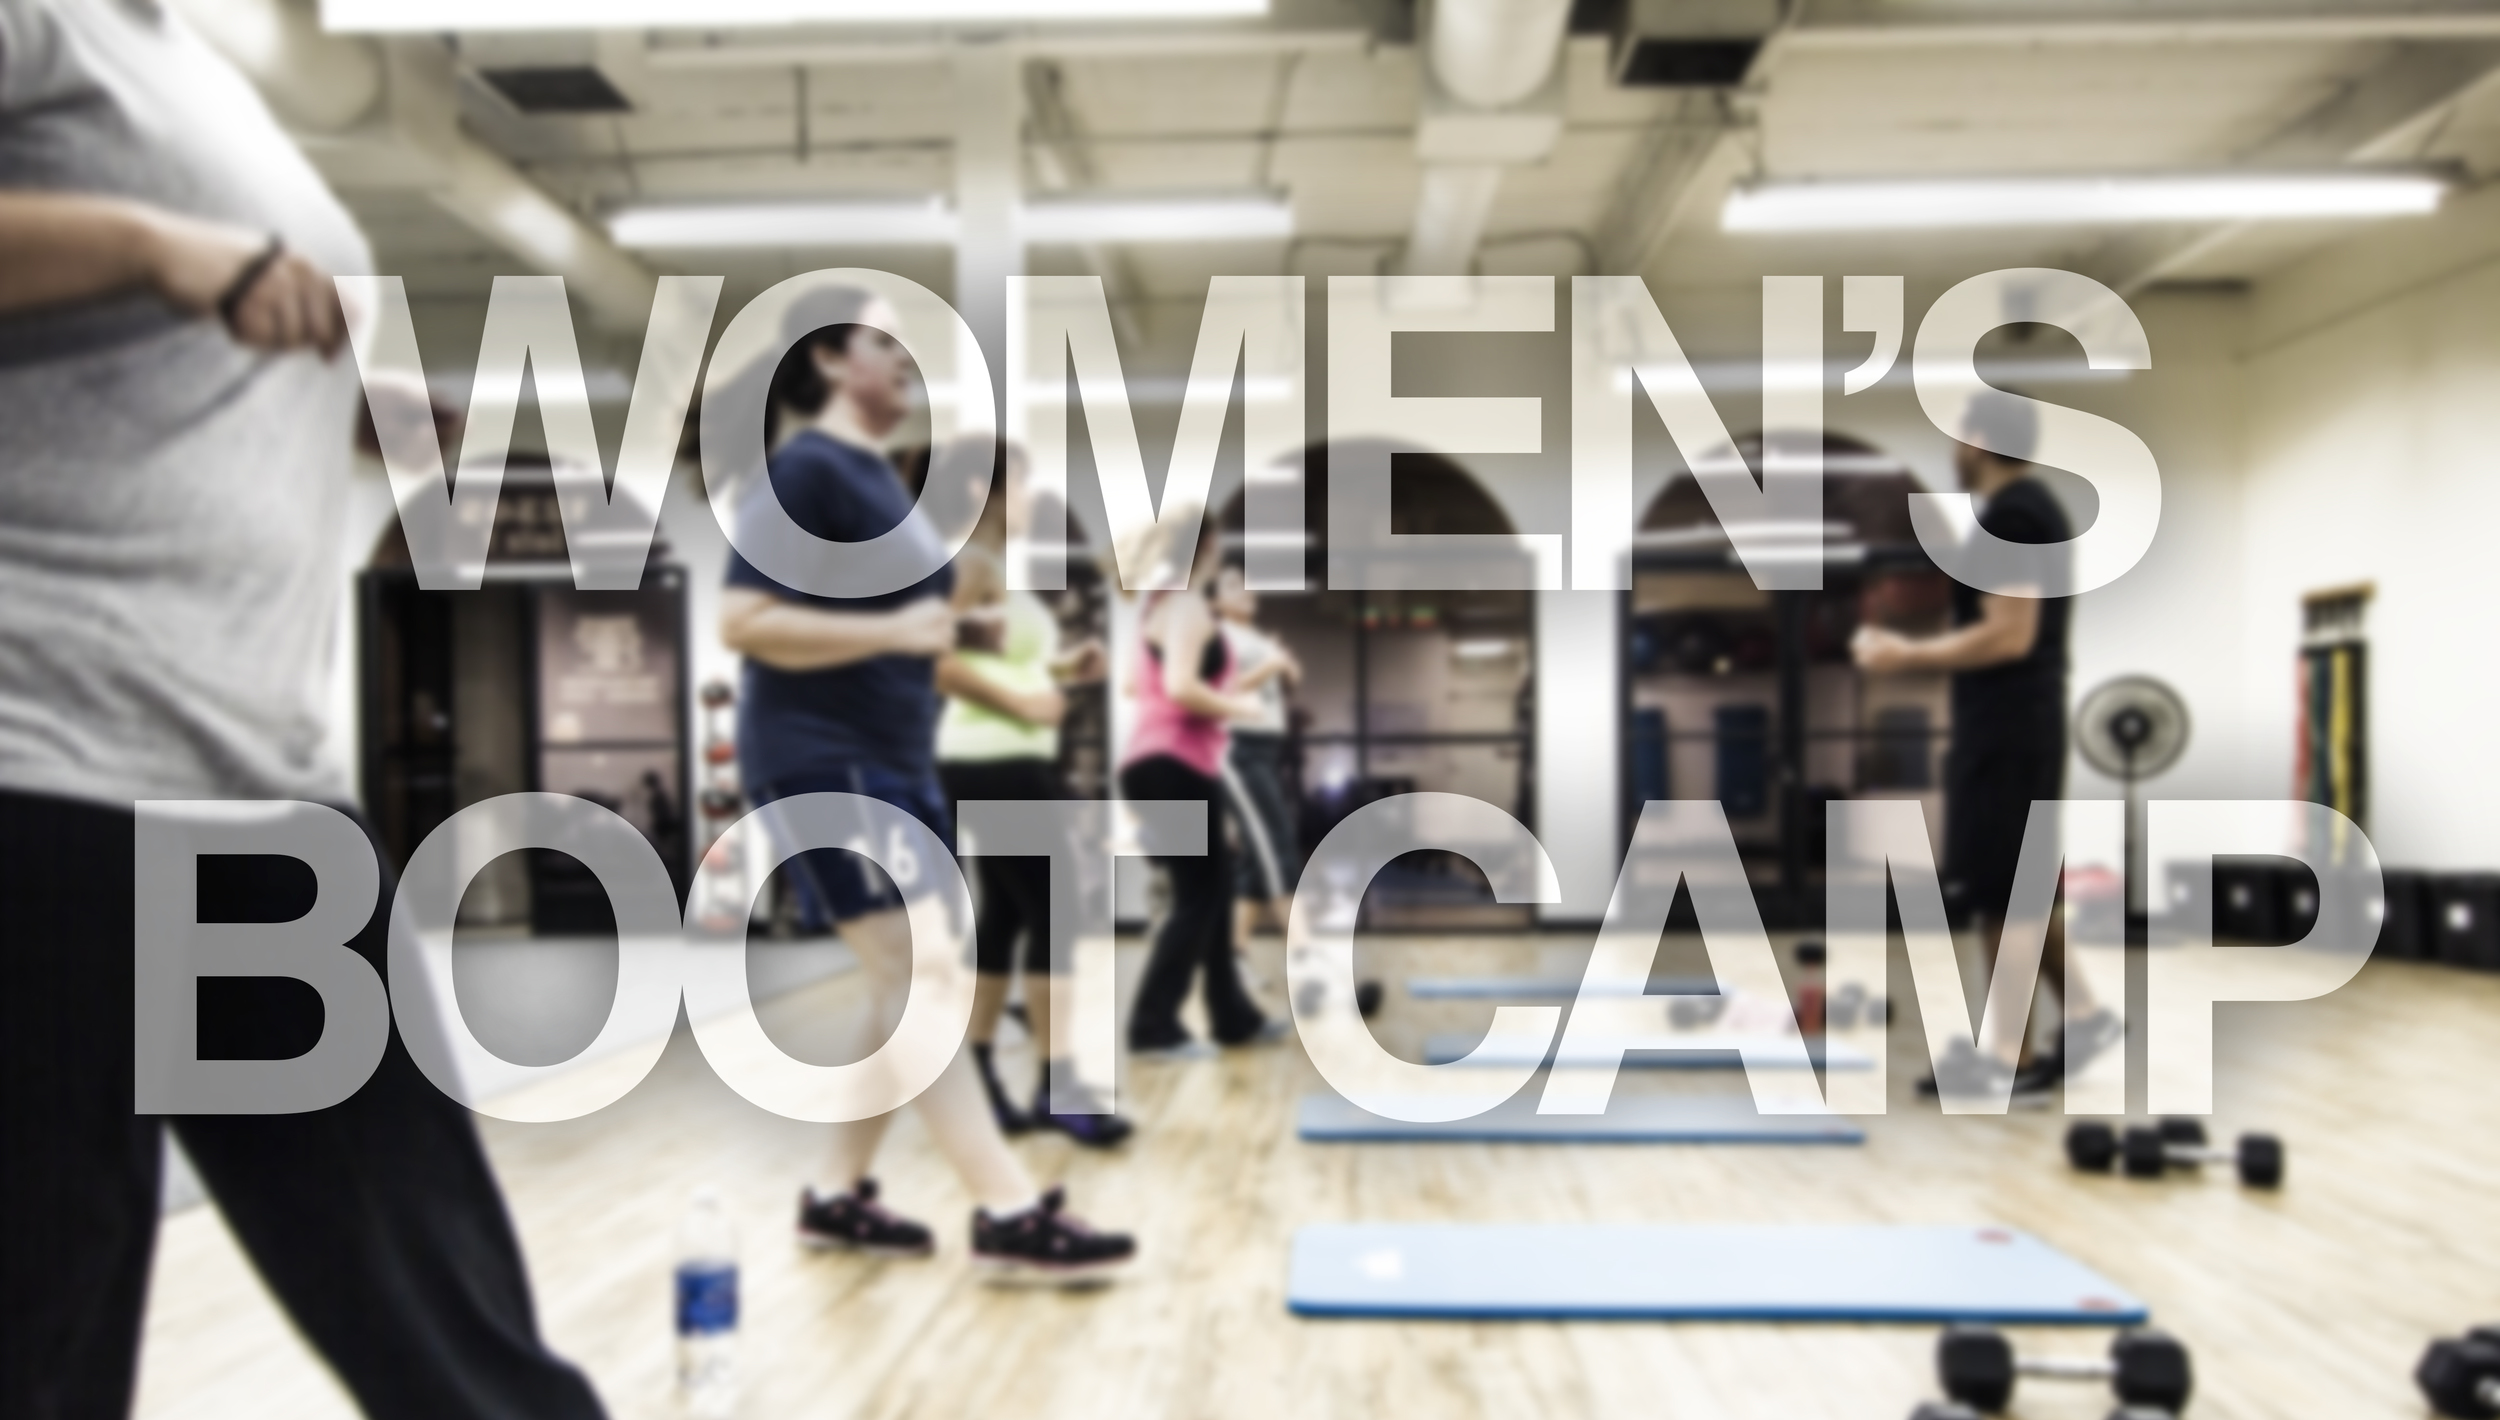 TRF WOMENS BOOTCAMP COVER.jpg